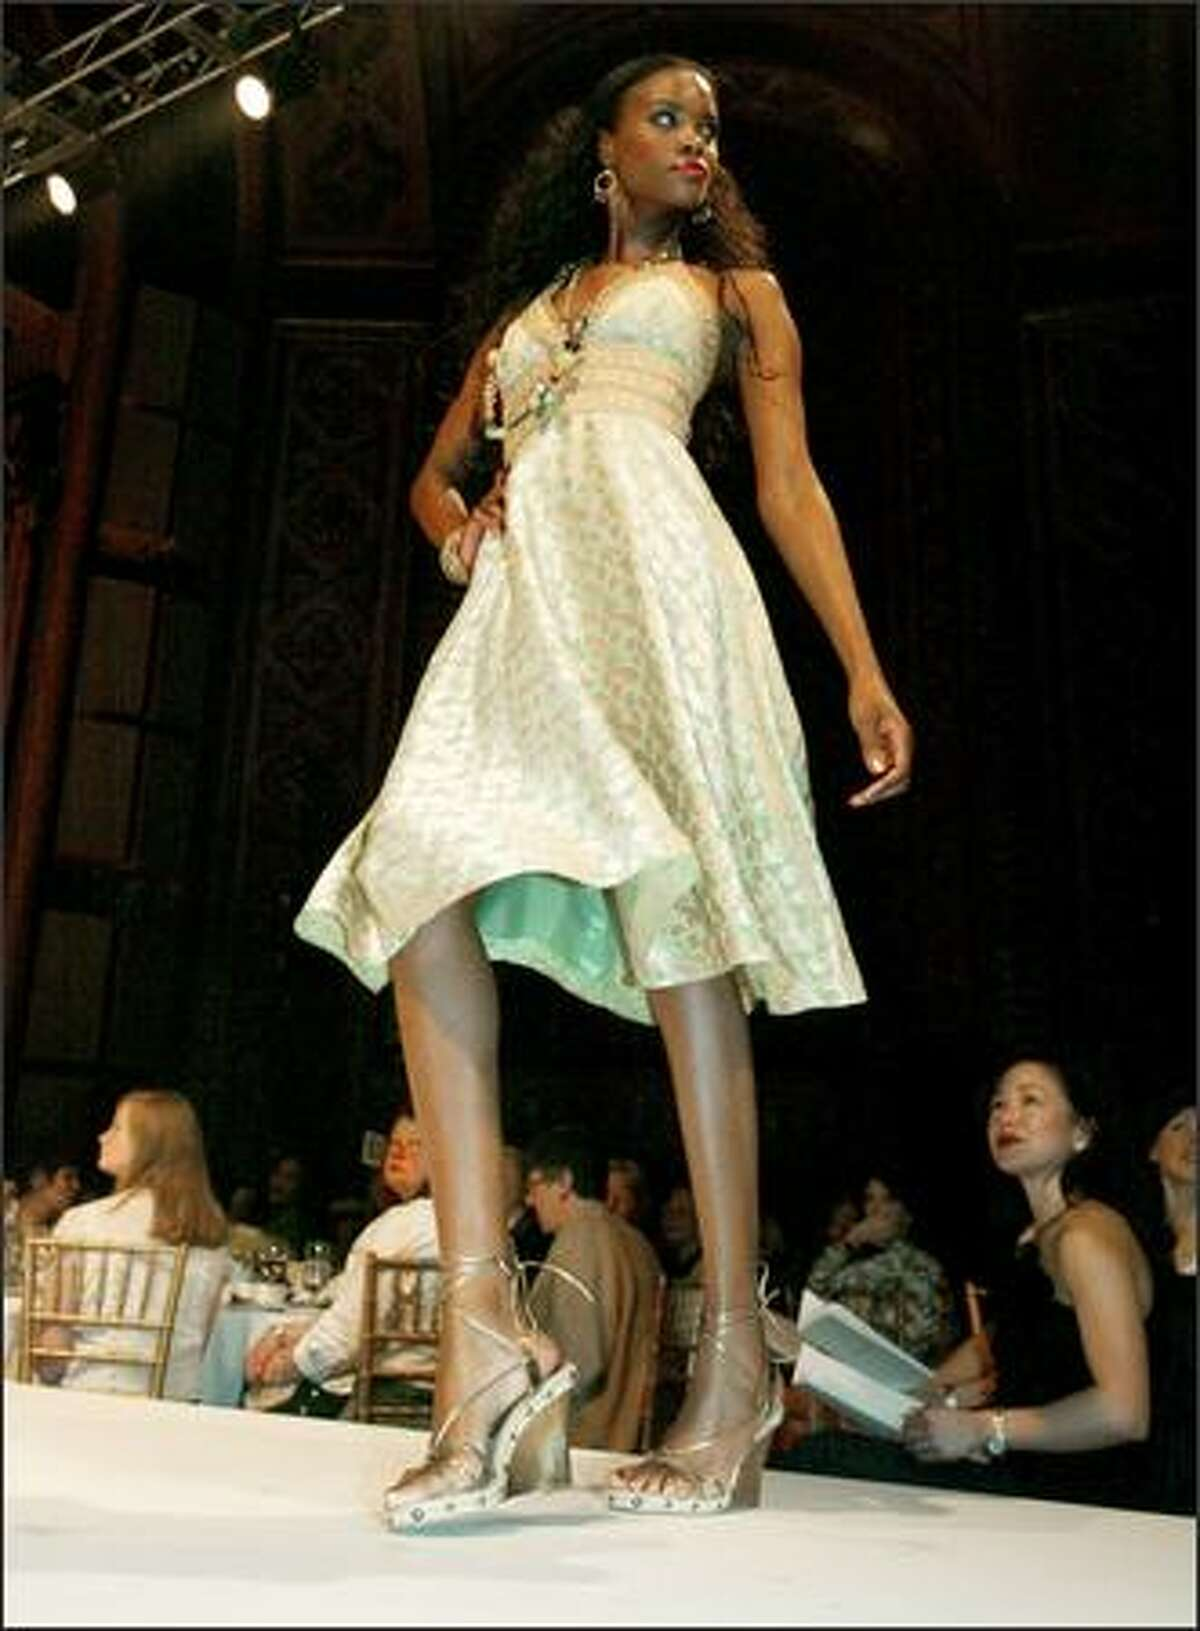 This Phoebe halter dress ($348) wowed the crowd at the Spring Preview fashion show. Studded platform shoes and oversize bags were prominent.